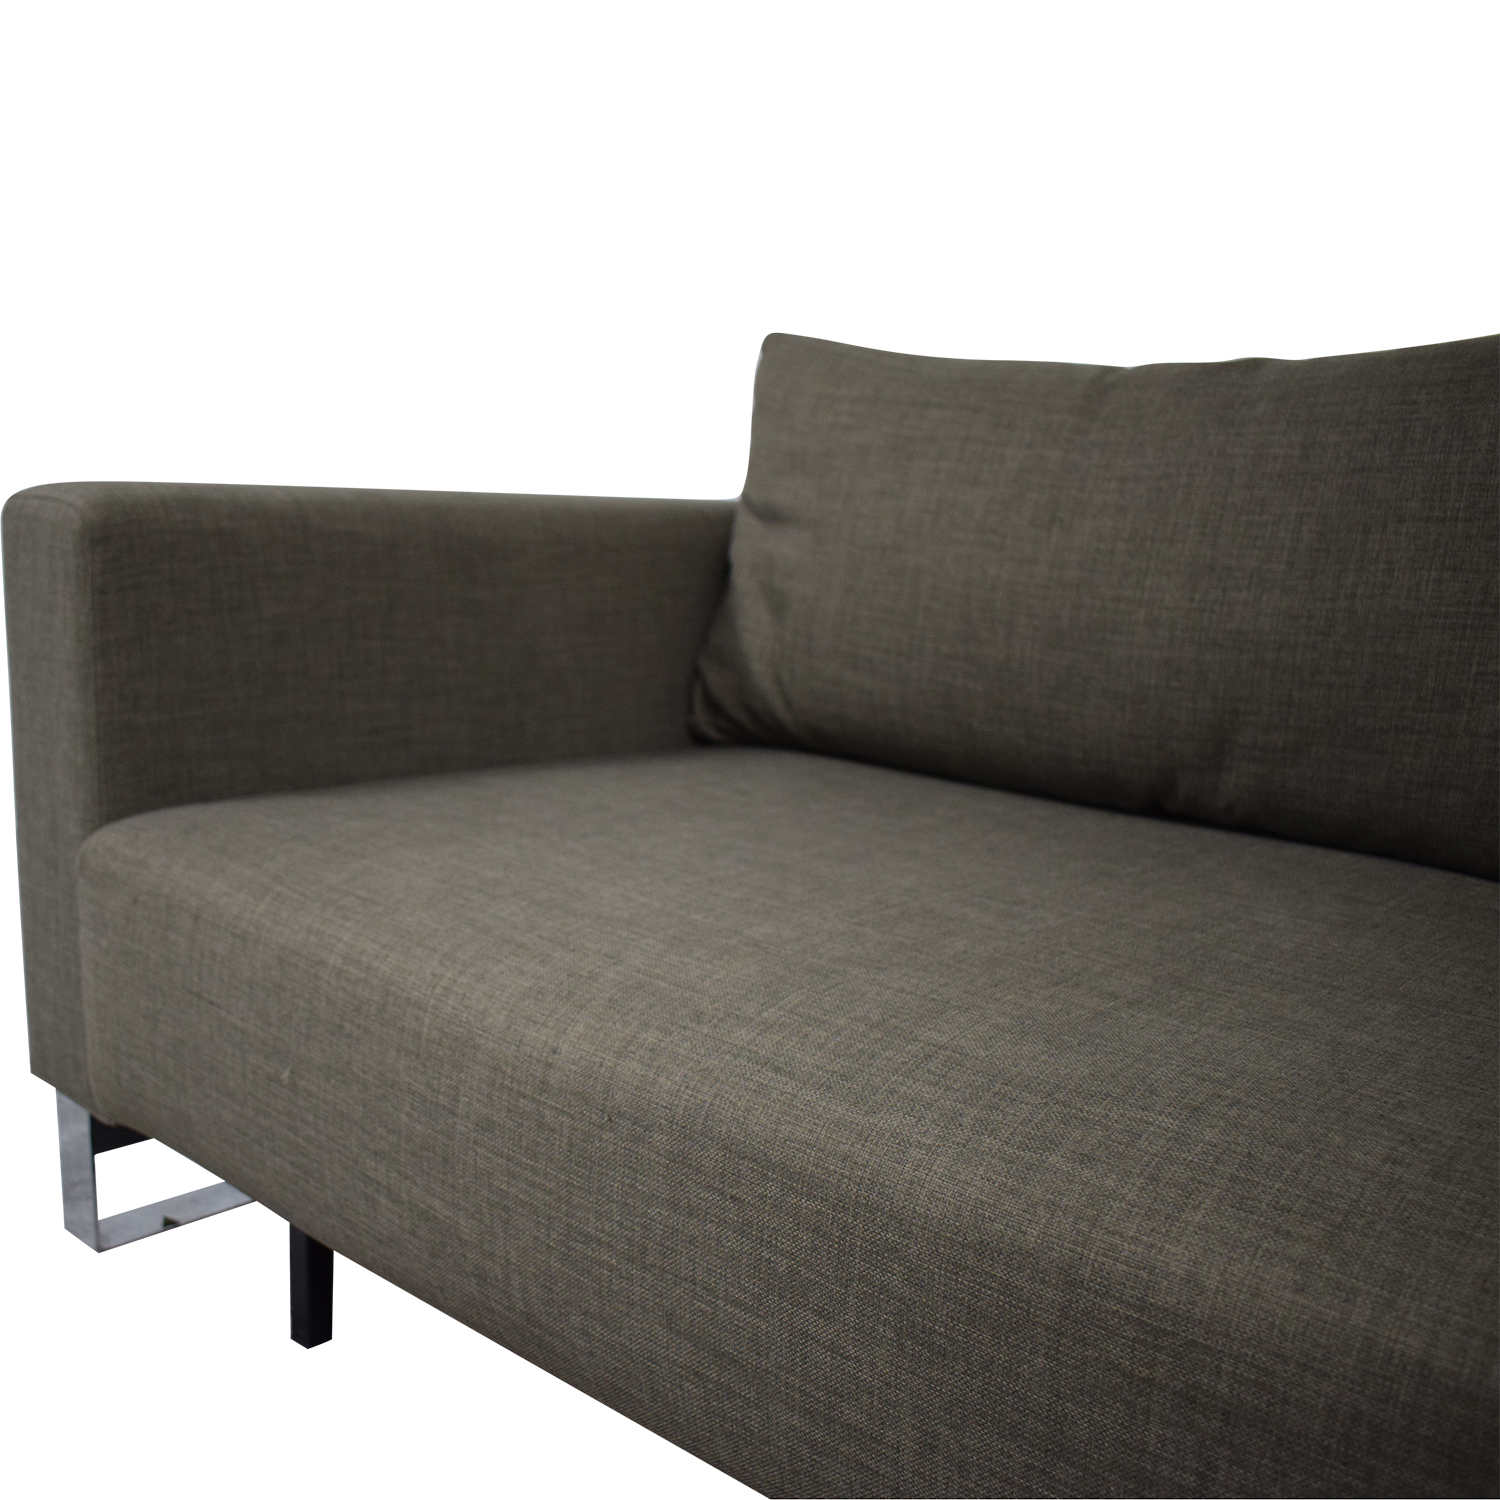 57% OFF - Innovation Living Innovation Living Cassius D.E.L. Sofa Bed /  Sofas